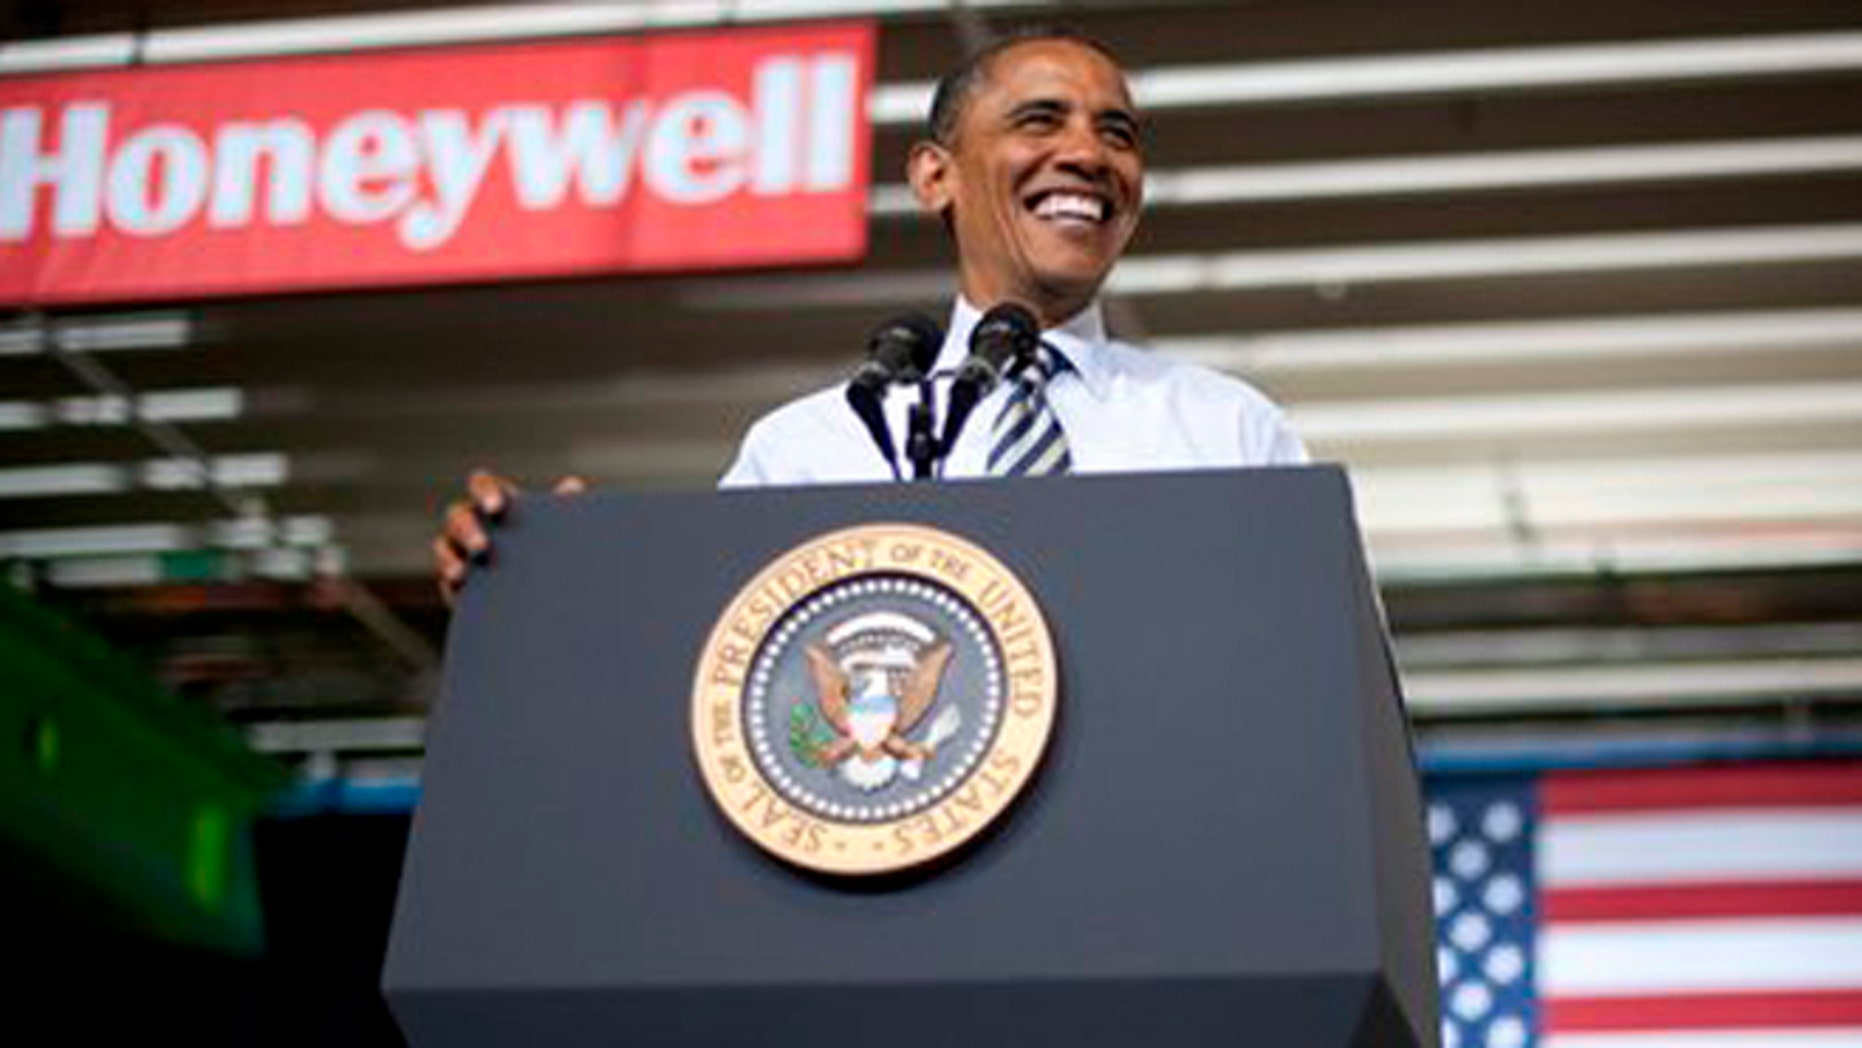 Friday, June 1, 2012: President Barack Obama speaks about jobs at a Honeywell Headquarters in Golden Valley, Minn.